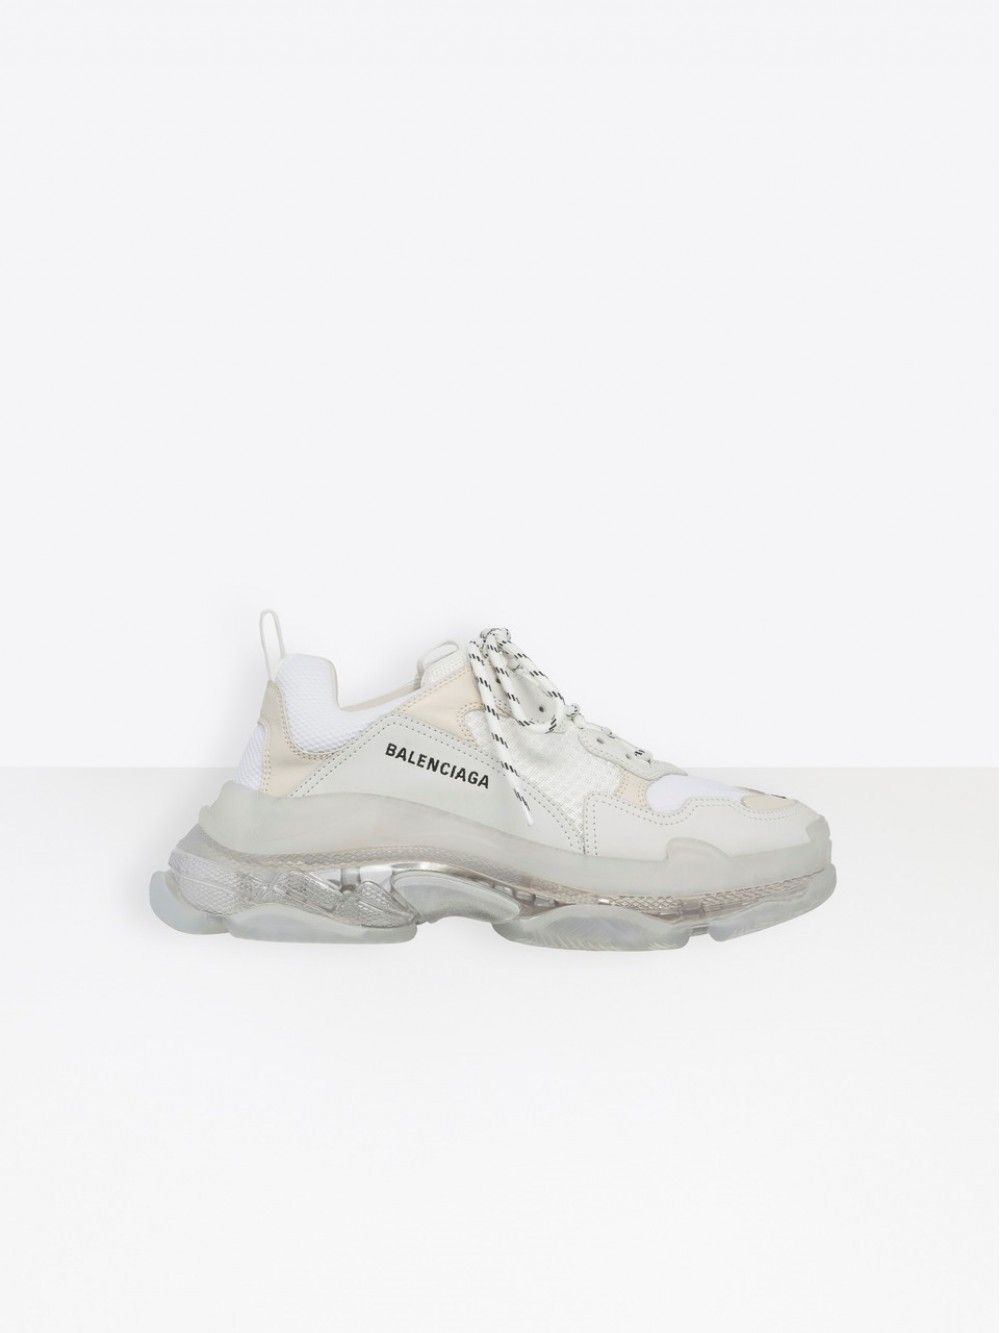 Balenciaga All White Triple S Sneakers 541624W09E1 9000